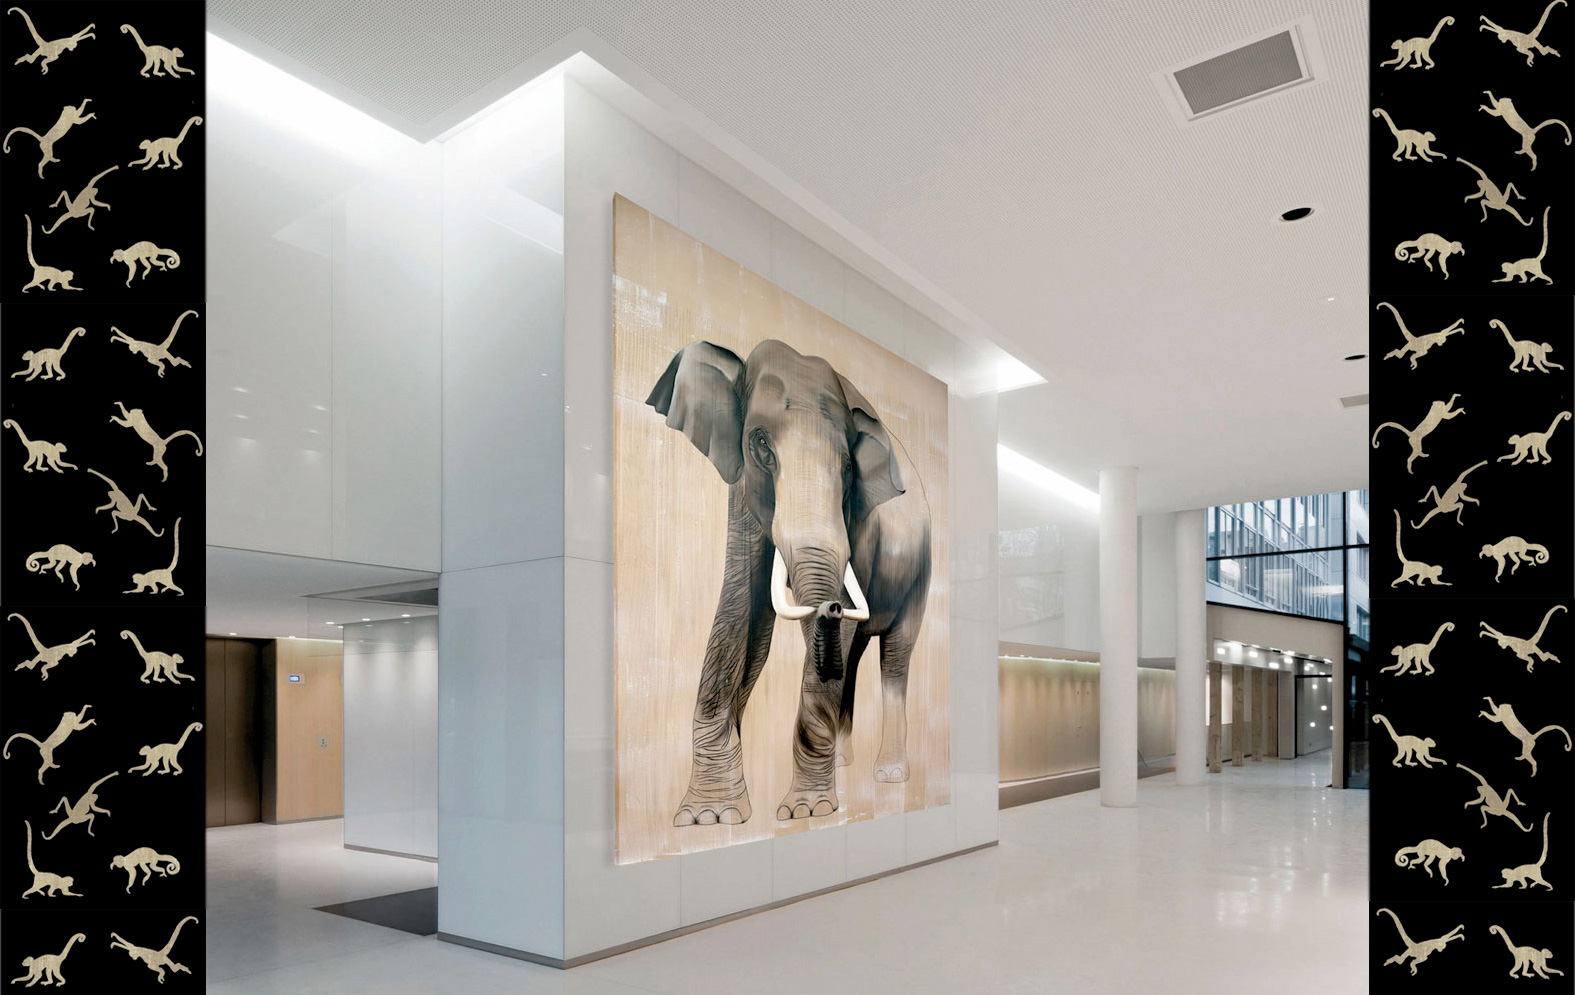 ELEPHAS-MAXIMUS asian-elephant-elephas-maximus-deco-decoration-large-size-printed-canvas-luxury-high-quality Thierry Bisch Contemporary painter animals painting art  nature biodiversity conservation